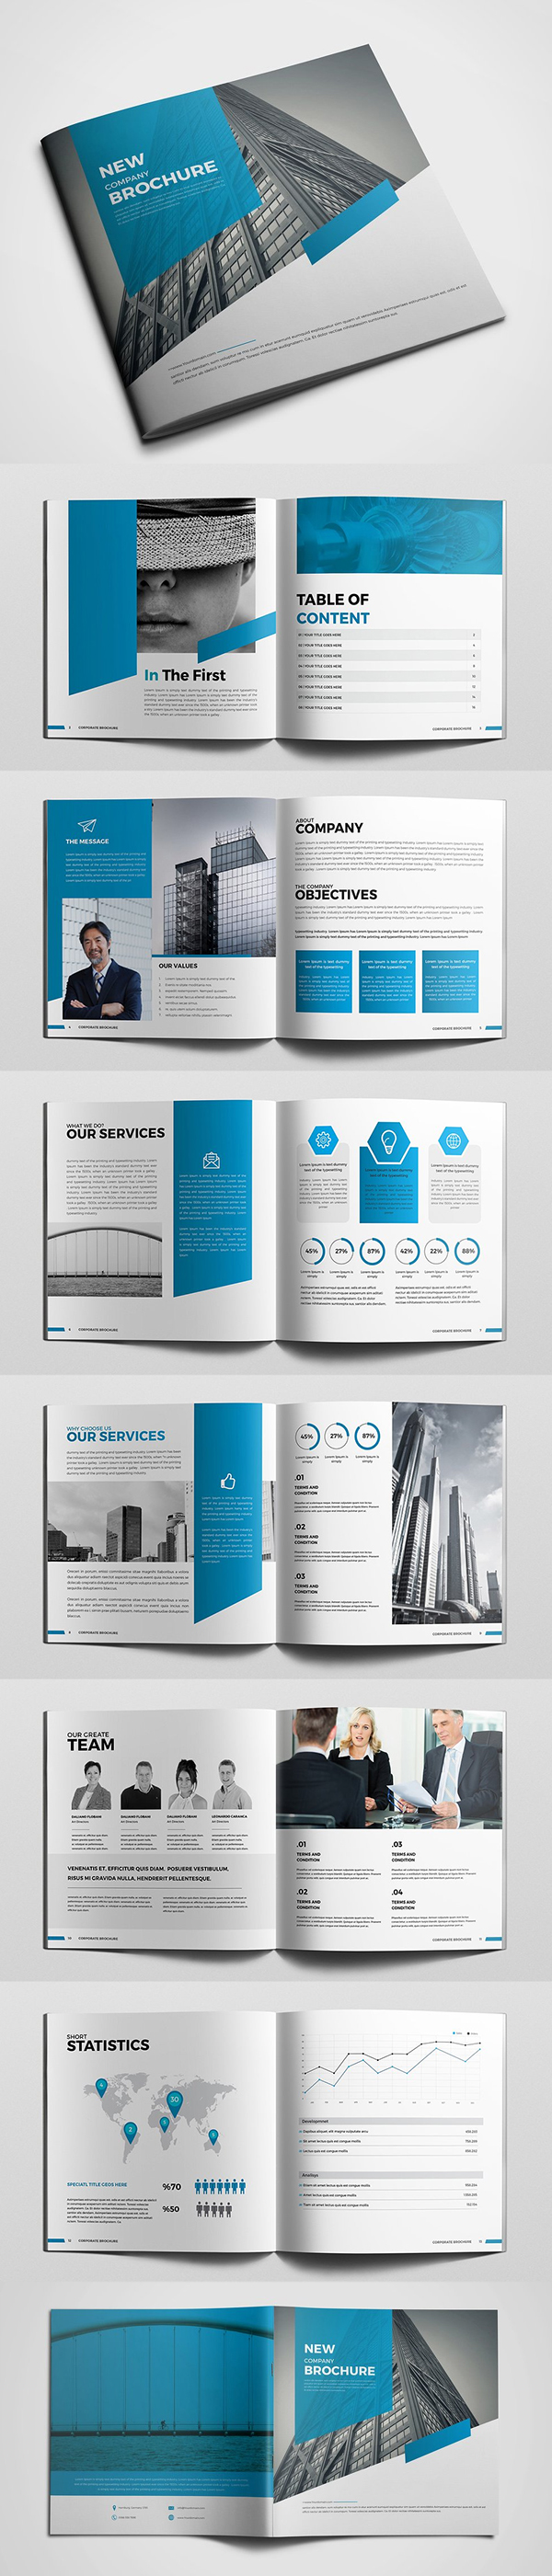 100 Professional Corporate Brochure Templates - 57